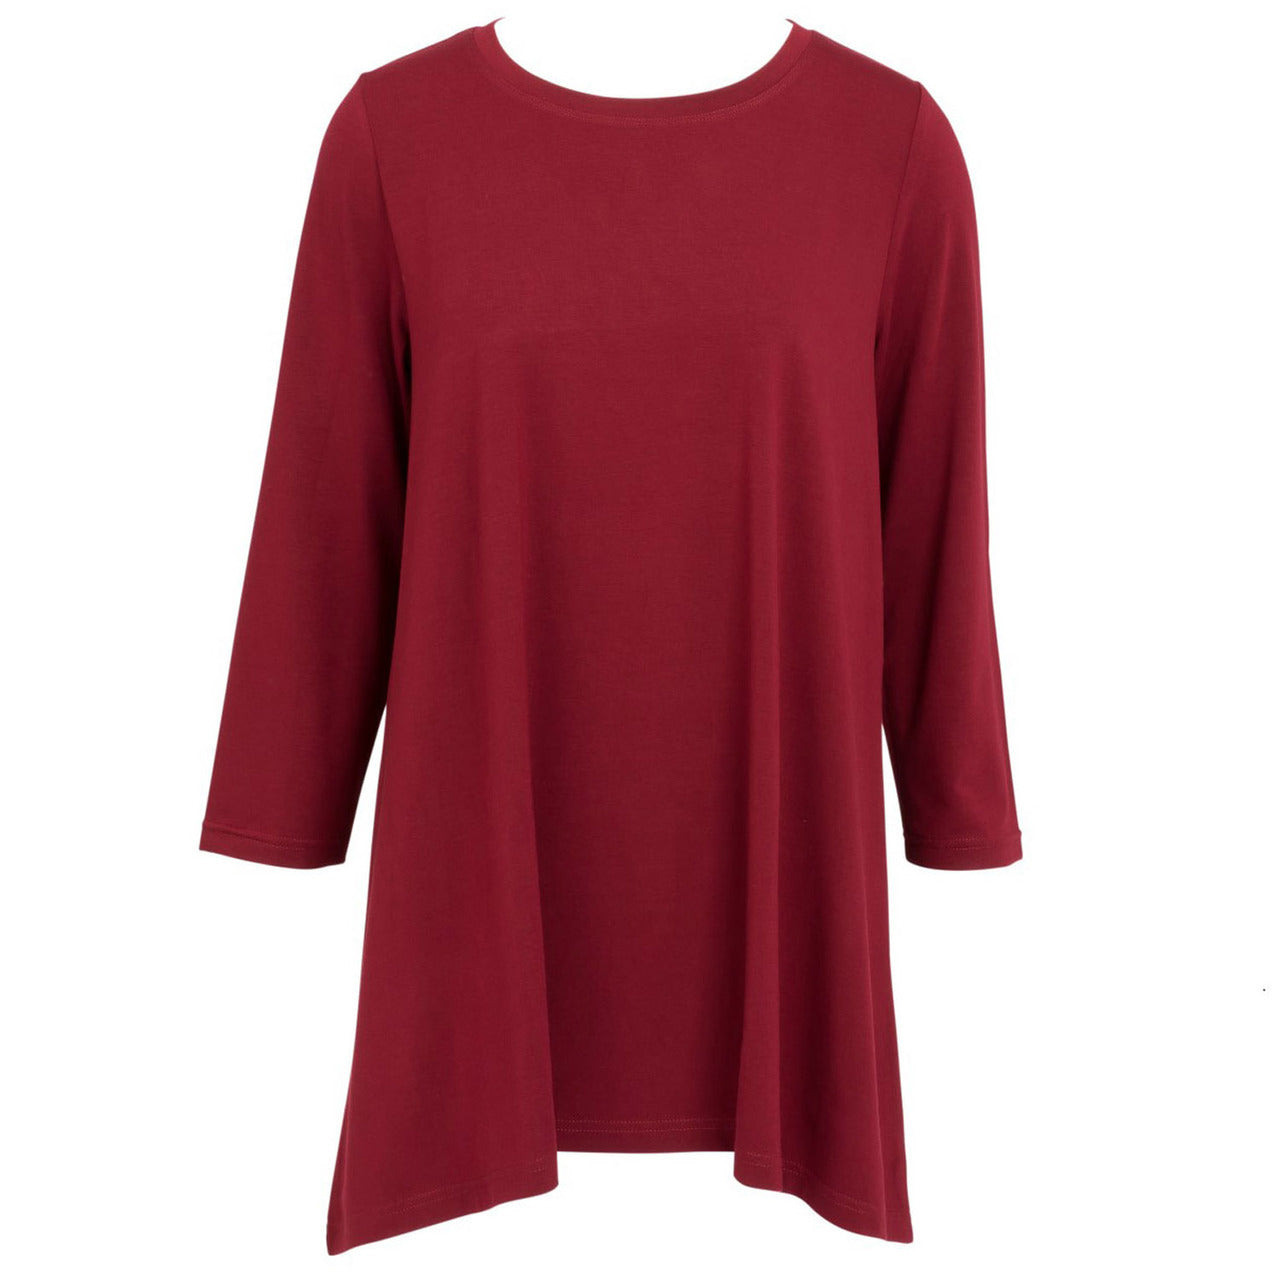 Mountain Mamas Essential Tunic in Merlot, Assorted Sizes - Bendixen's Giftware